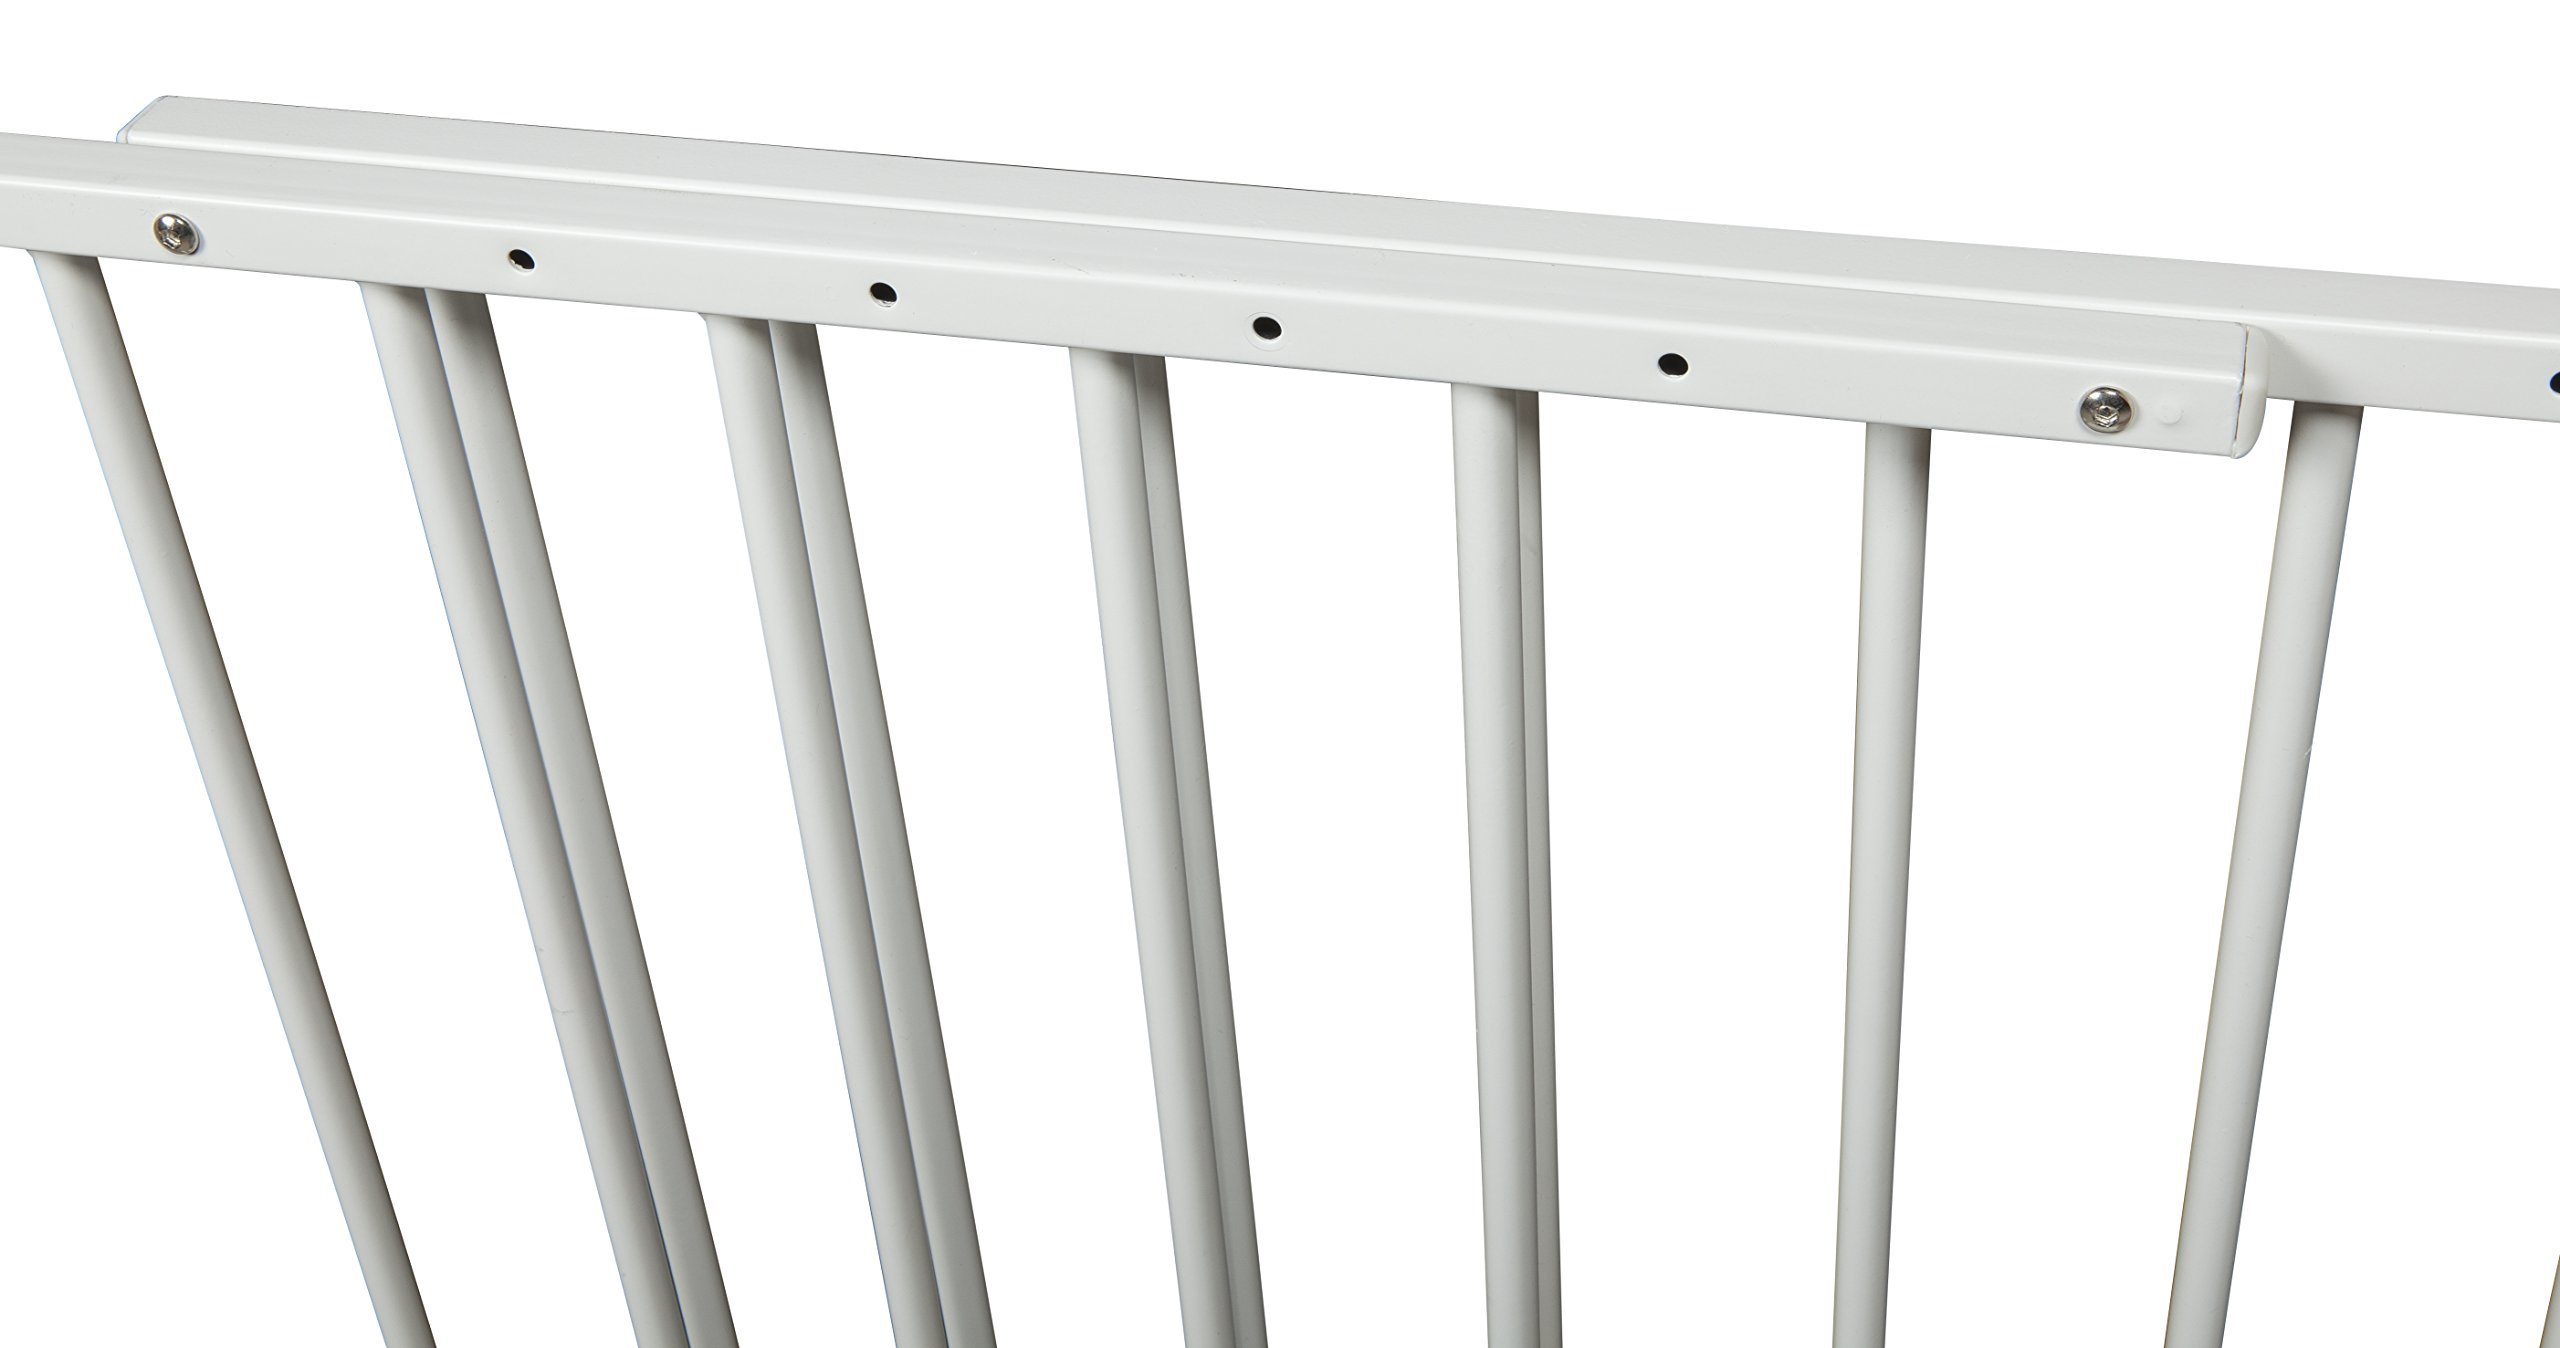 Storkcraft Easy Walk-Thru Tall Metal Safety Gate, White Adjustable Baby Safety Gate For Doorways and Stairs, Great for Children and Pets by Stork Craft (Image #5)